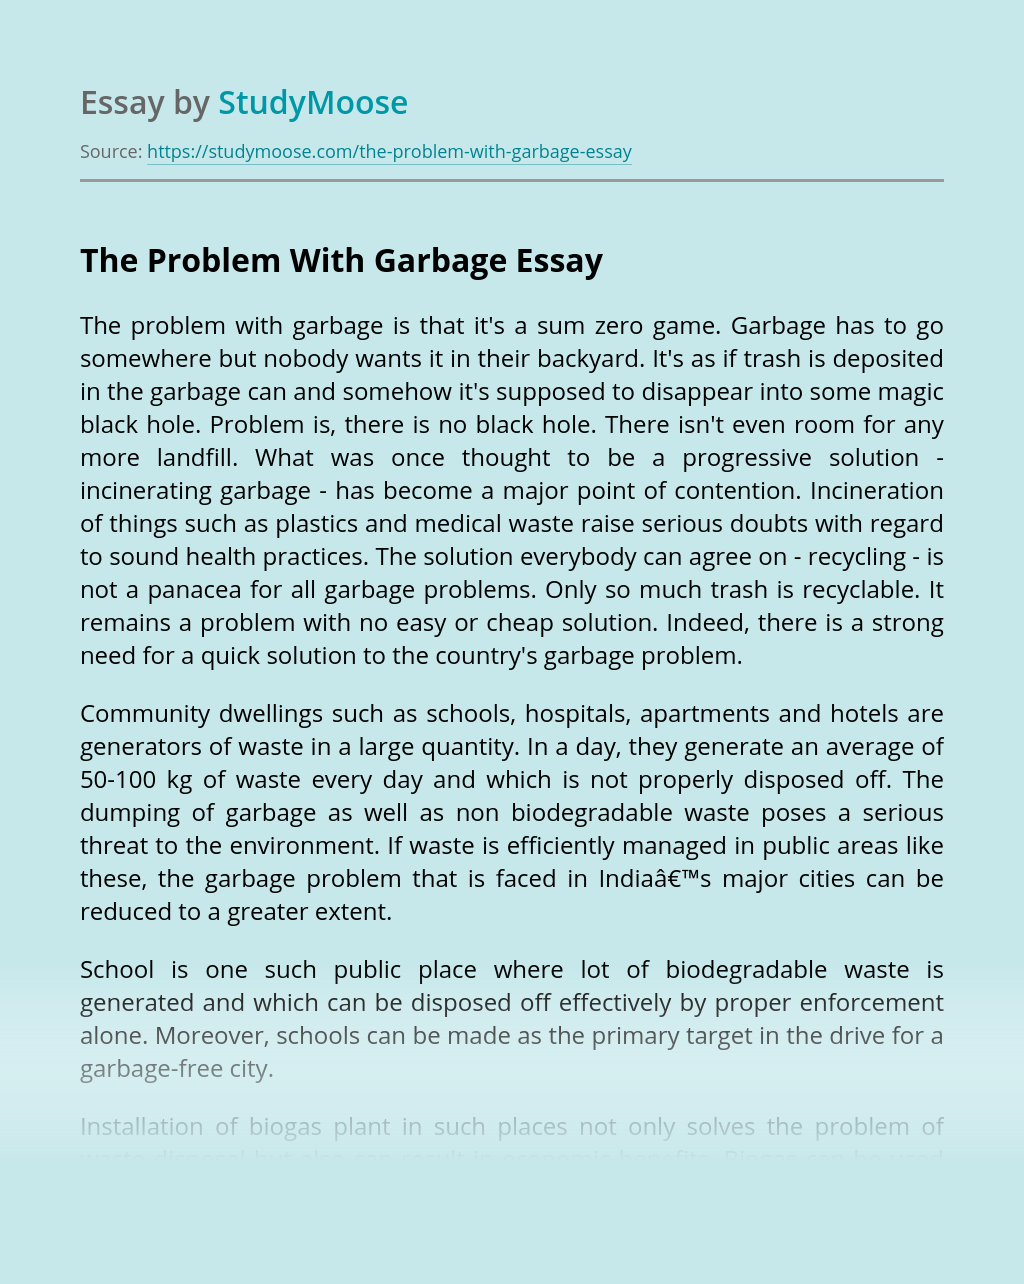 The Problem With Garbage